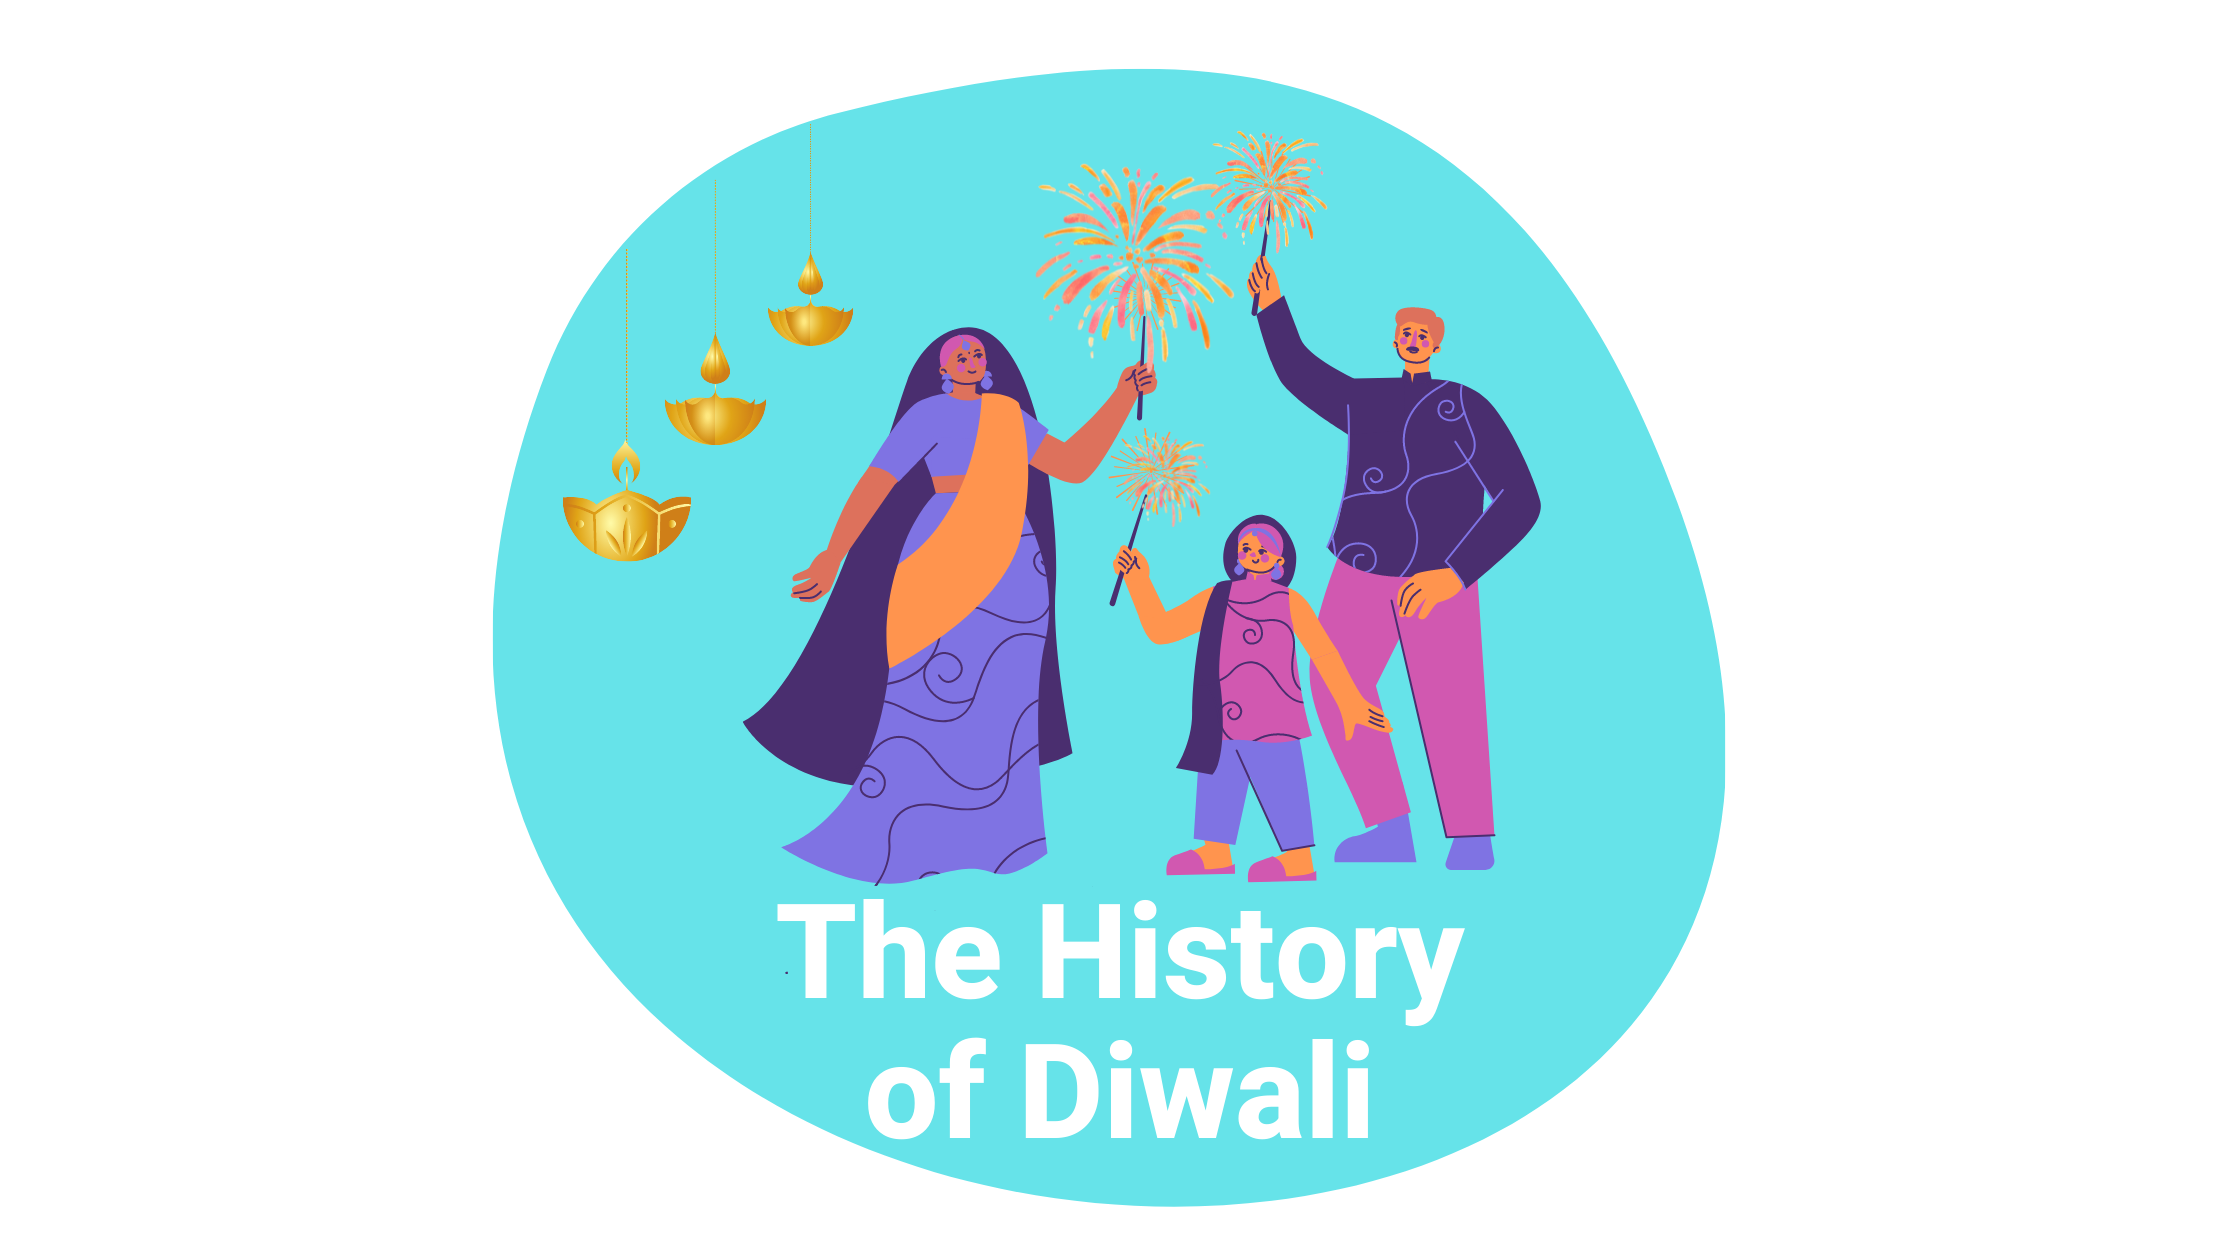 The History of Diwali